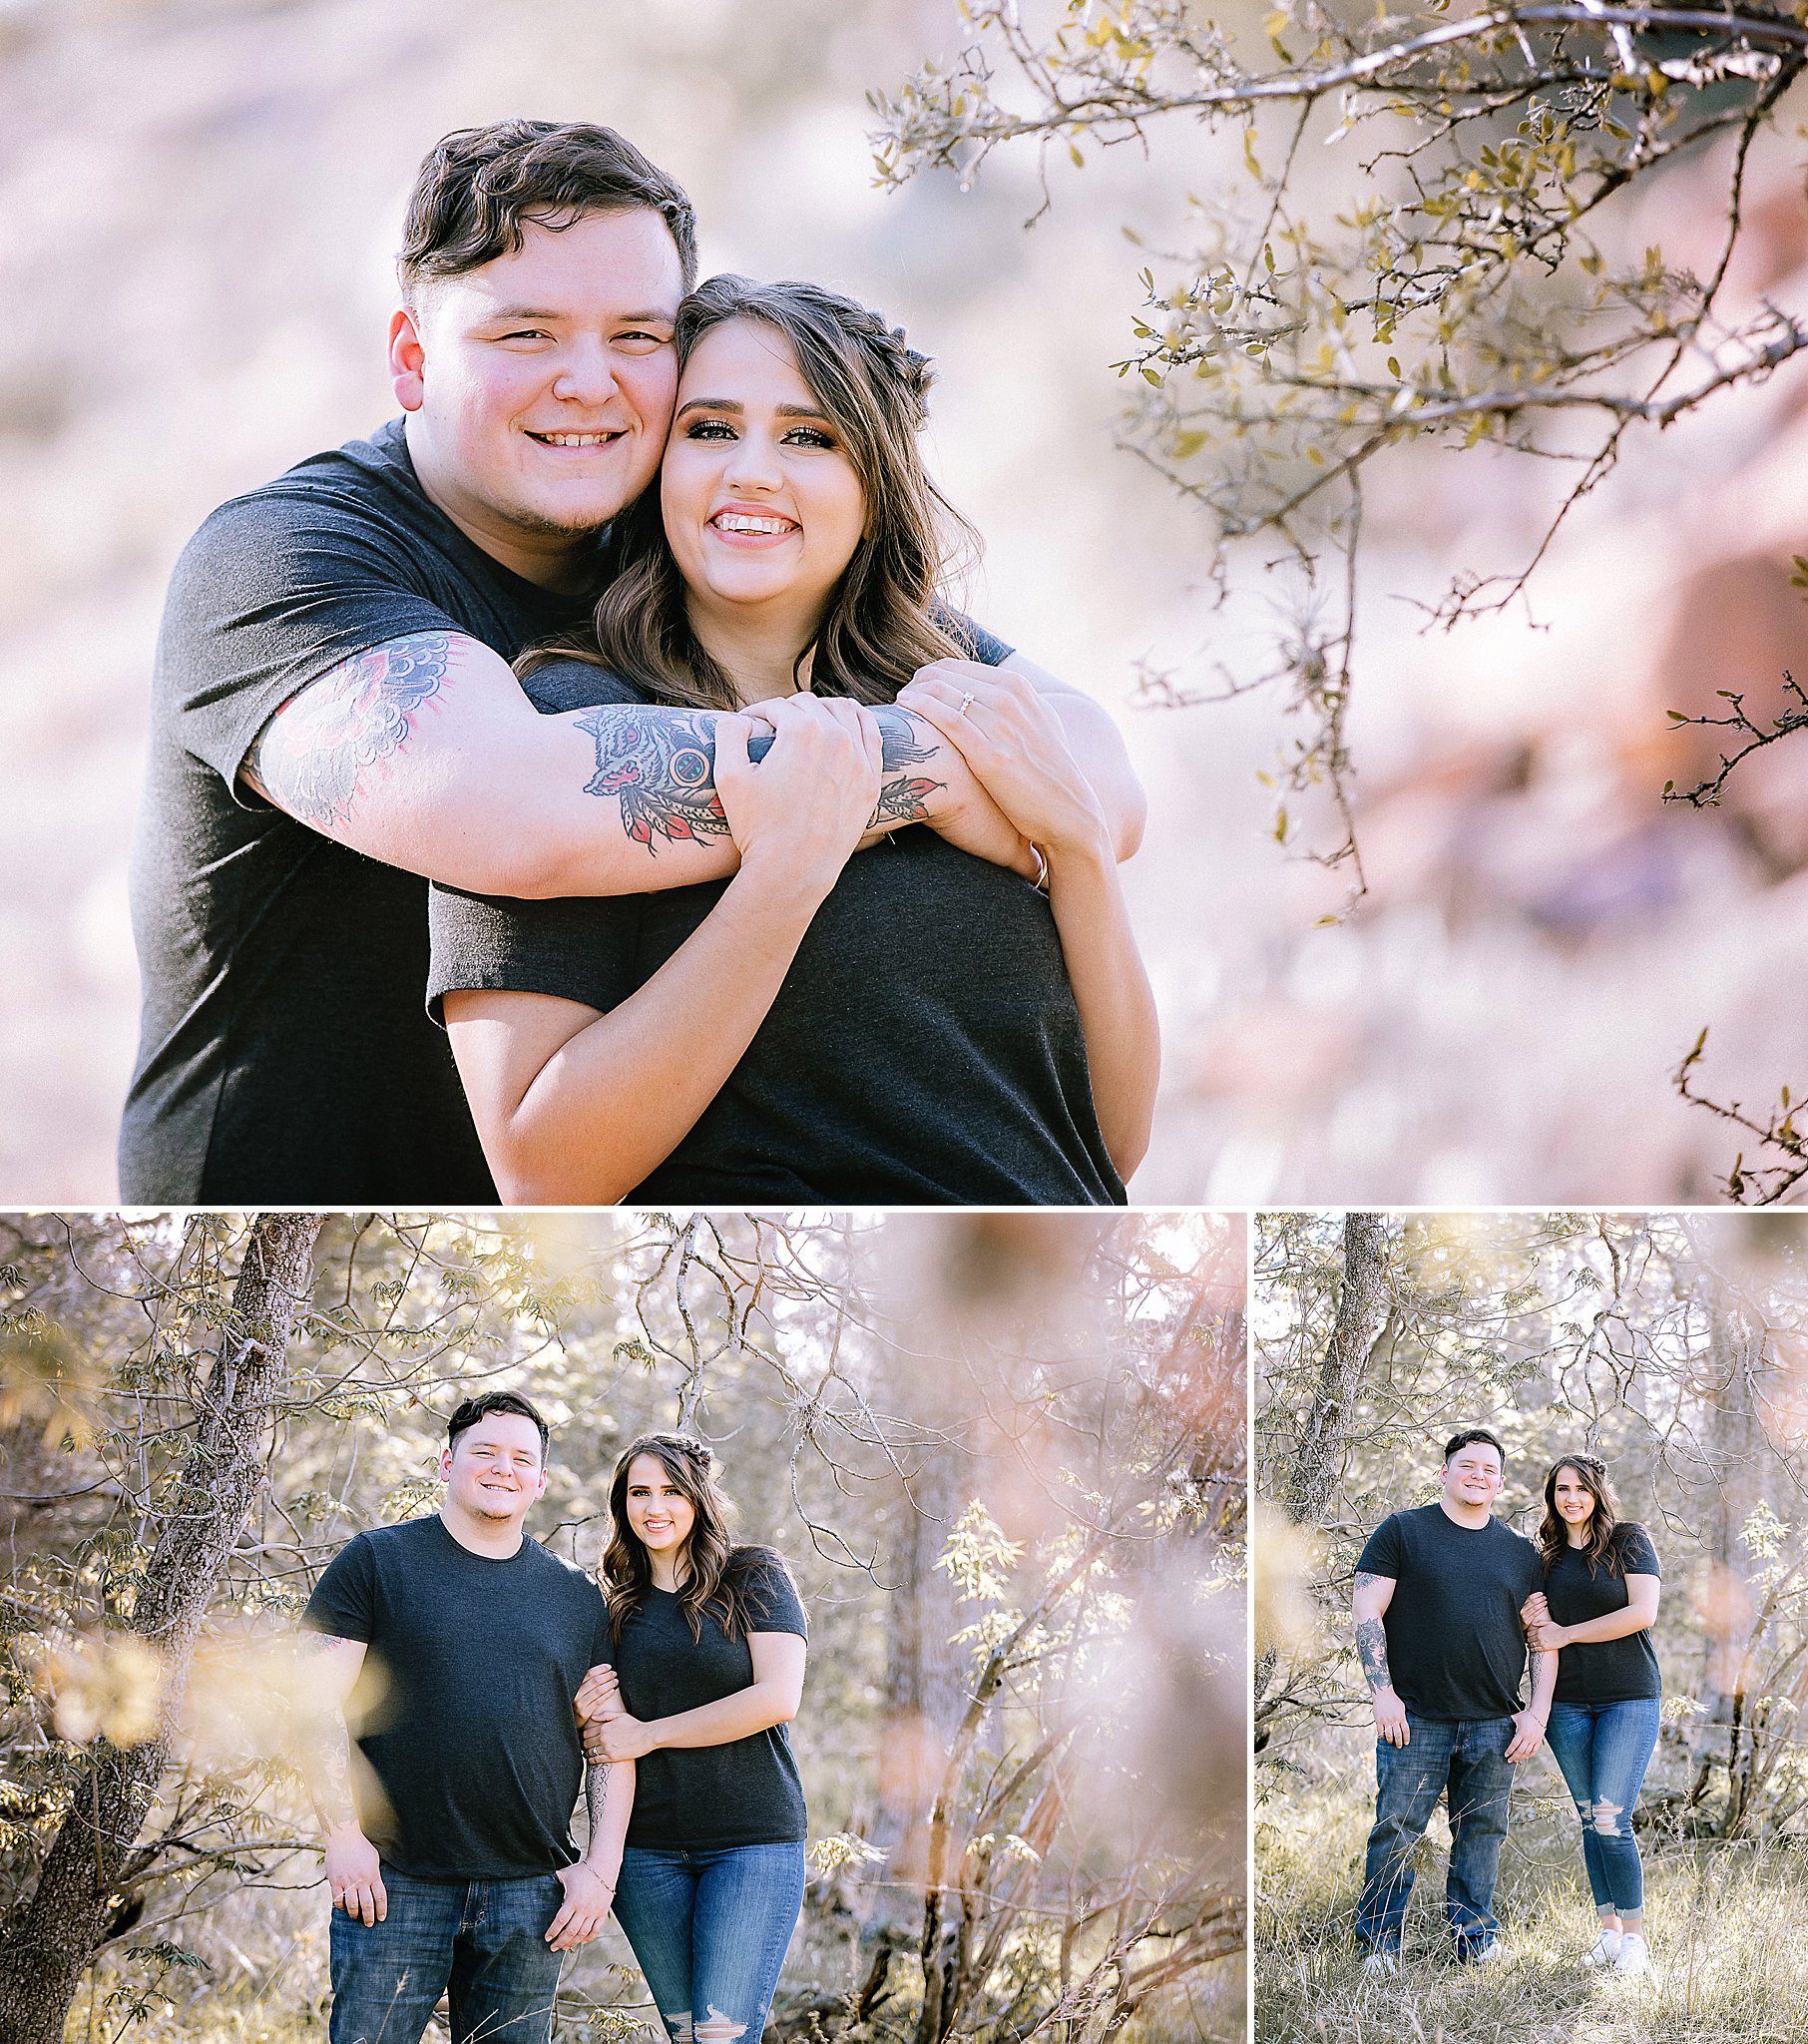 Carly-Barton-Photography-Fredericksburg-Texas-Engagement-Session-Enchanted-Rock-Photos_0002.jpg